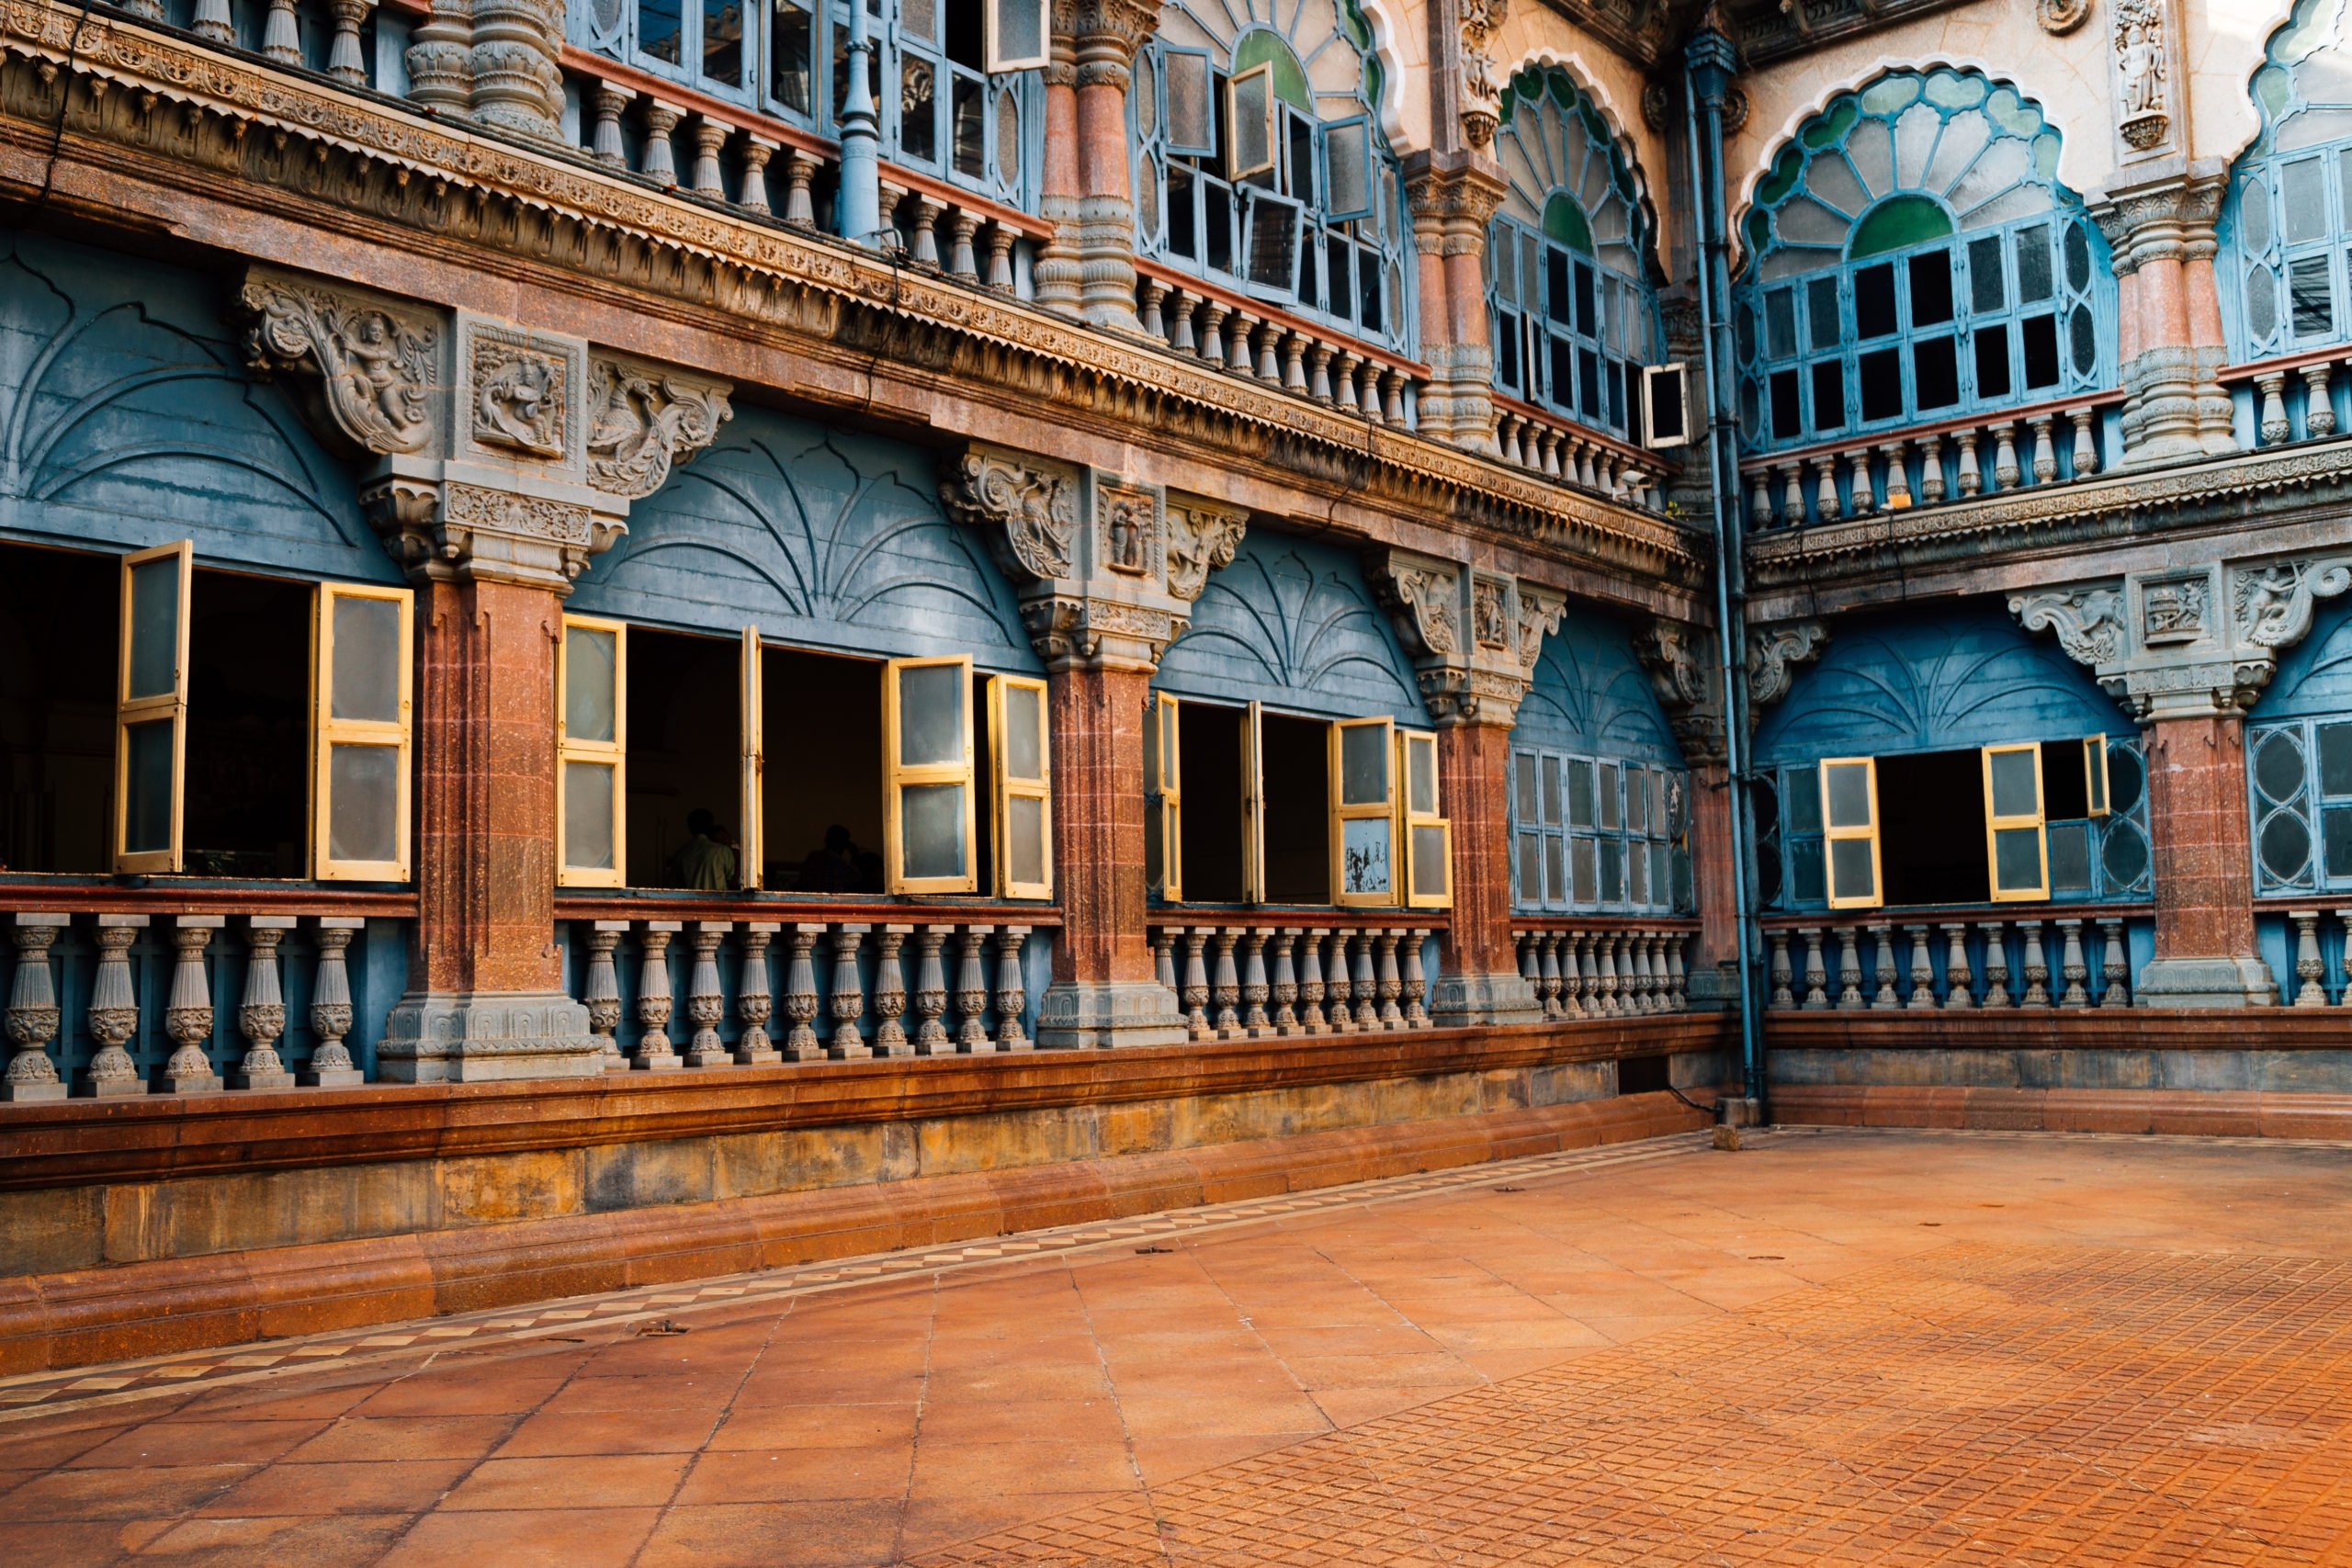 Explore The Interior Of The Roayal Palace On The Royal Kingdom Of Mysore Tour From Bangalore